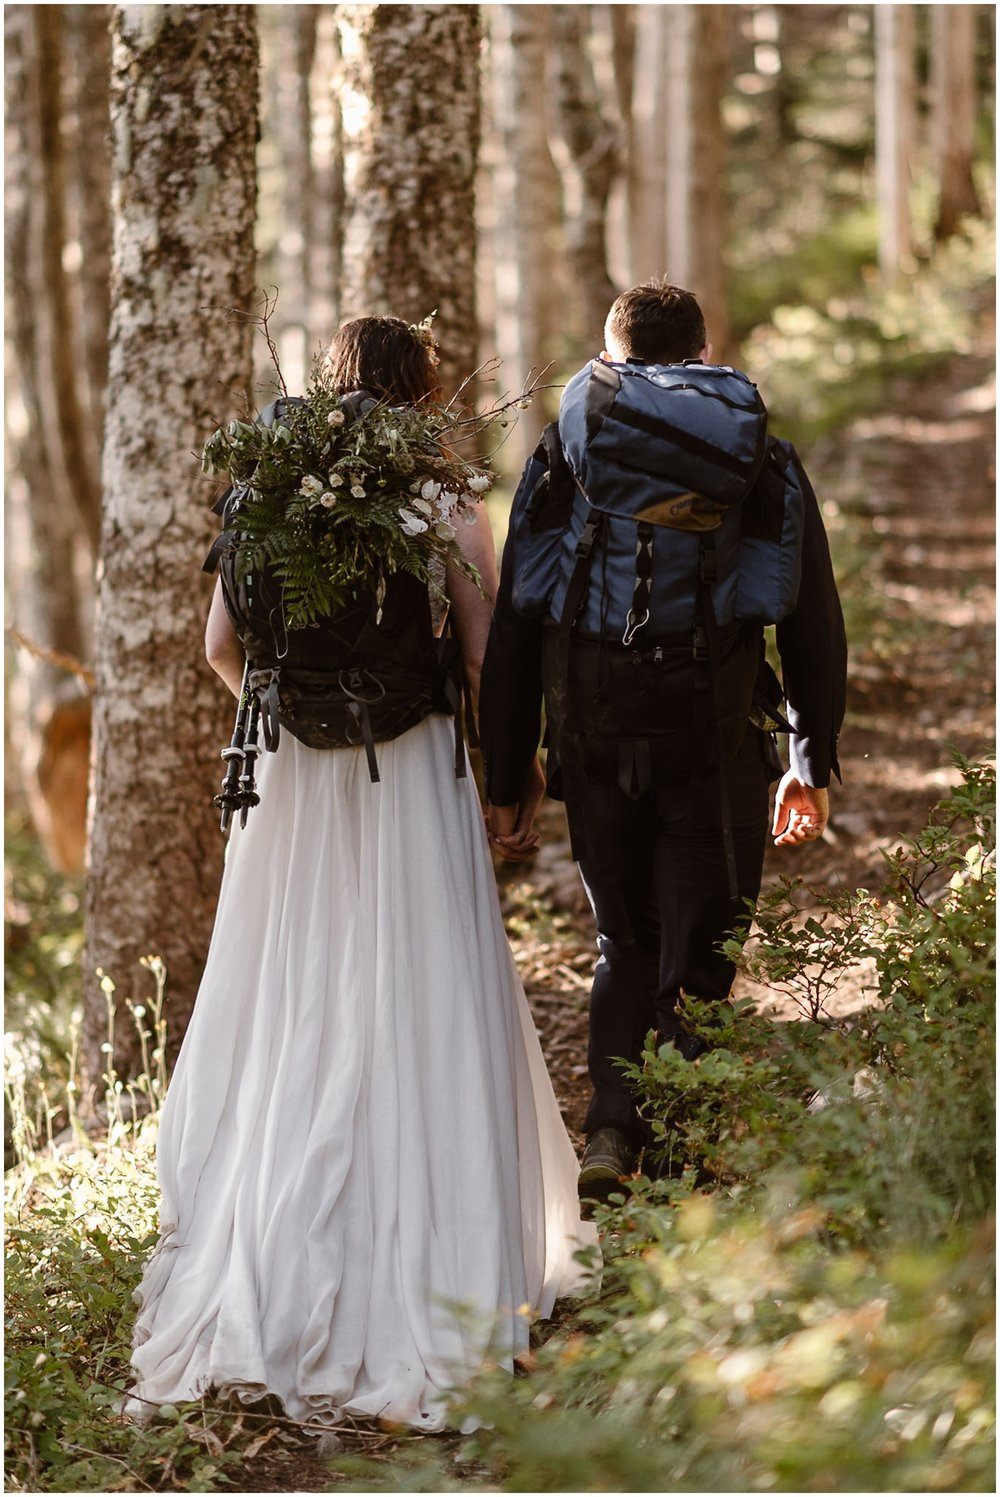 In this adventure elopement photo captured by elopement photographer Adventure Instead, Lauryn and David, the bride and groom, are seen hiking back down the mountain. Still in their wedding attire, their backpacks are loaded up with hiking gear and Lauryn's hardy hiking bouquet, one of the unique eloping ideas the couple wanted to include their elopement wedding.